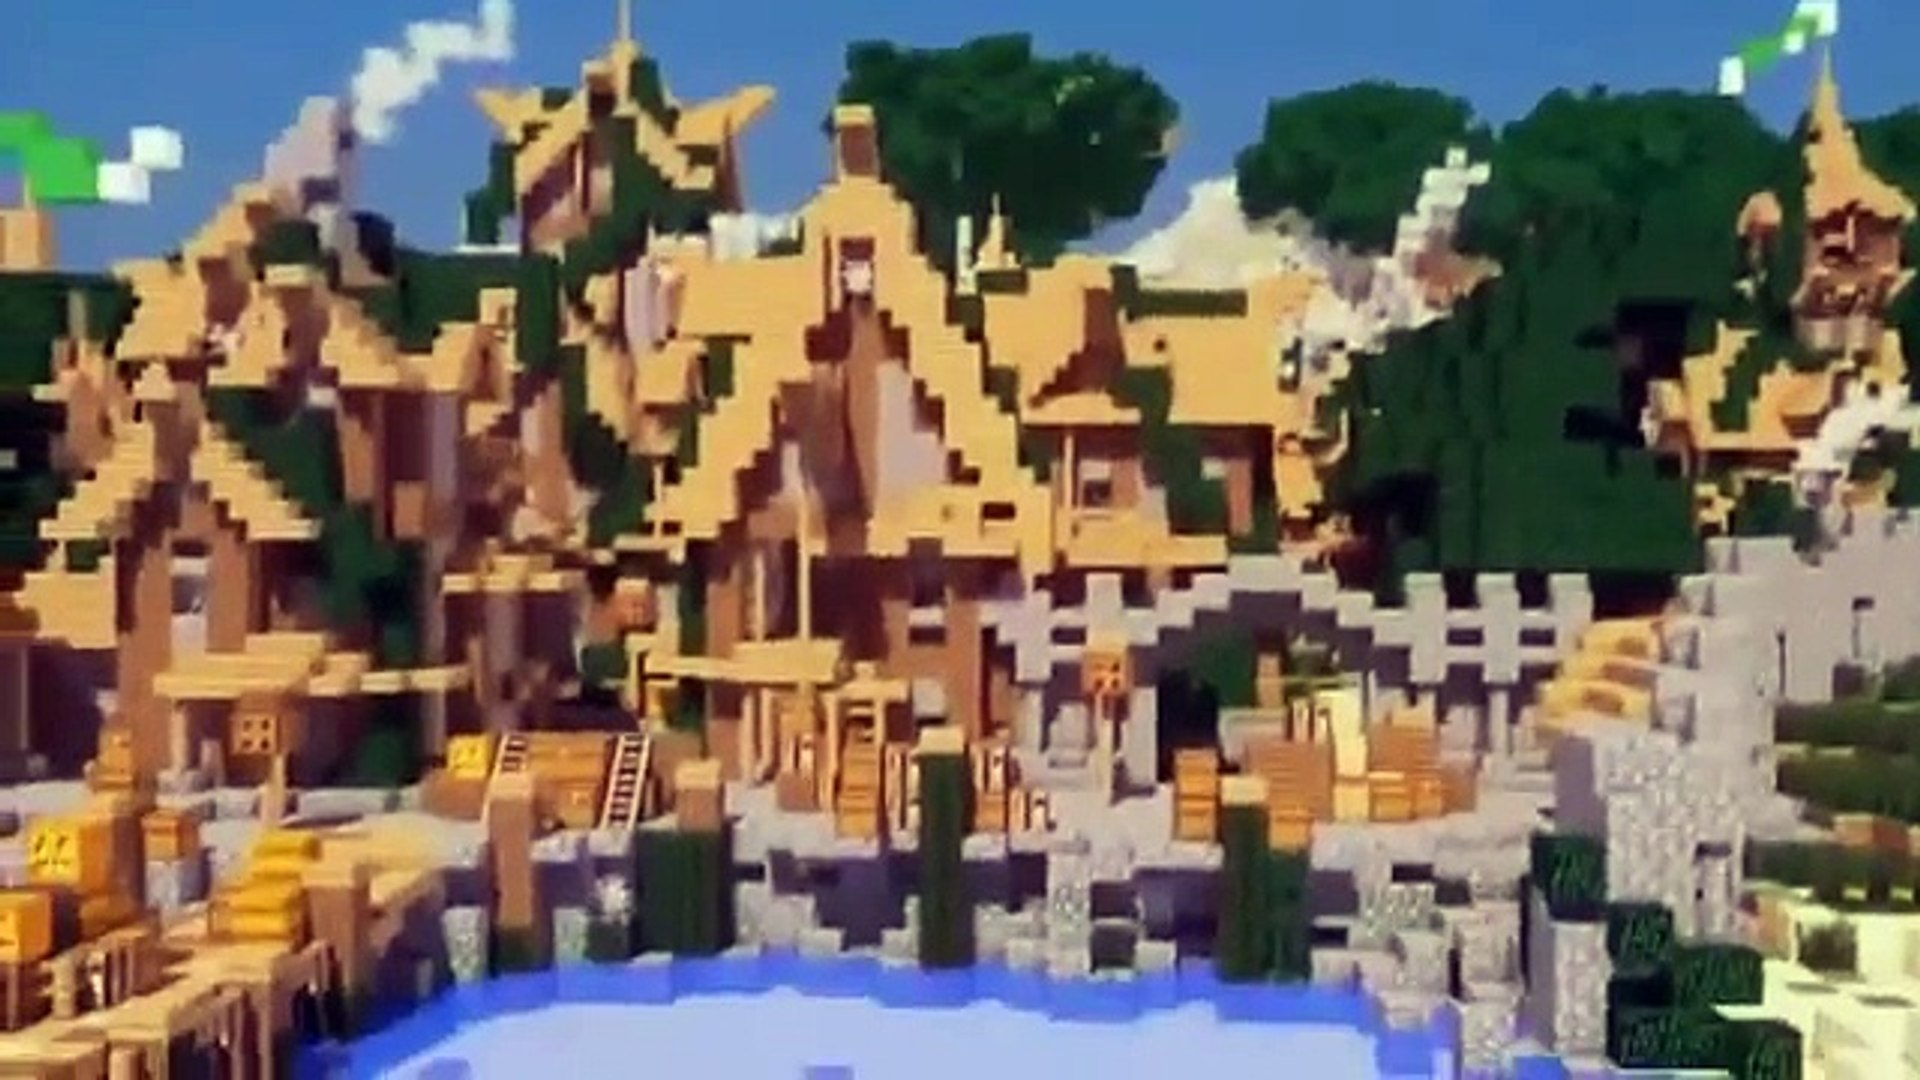 Top 5 Minecraft Song Parody Animation   Top 5 Minecraft Songs Parodies Animations January 2015!